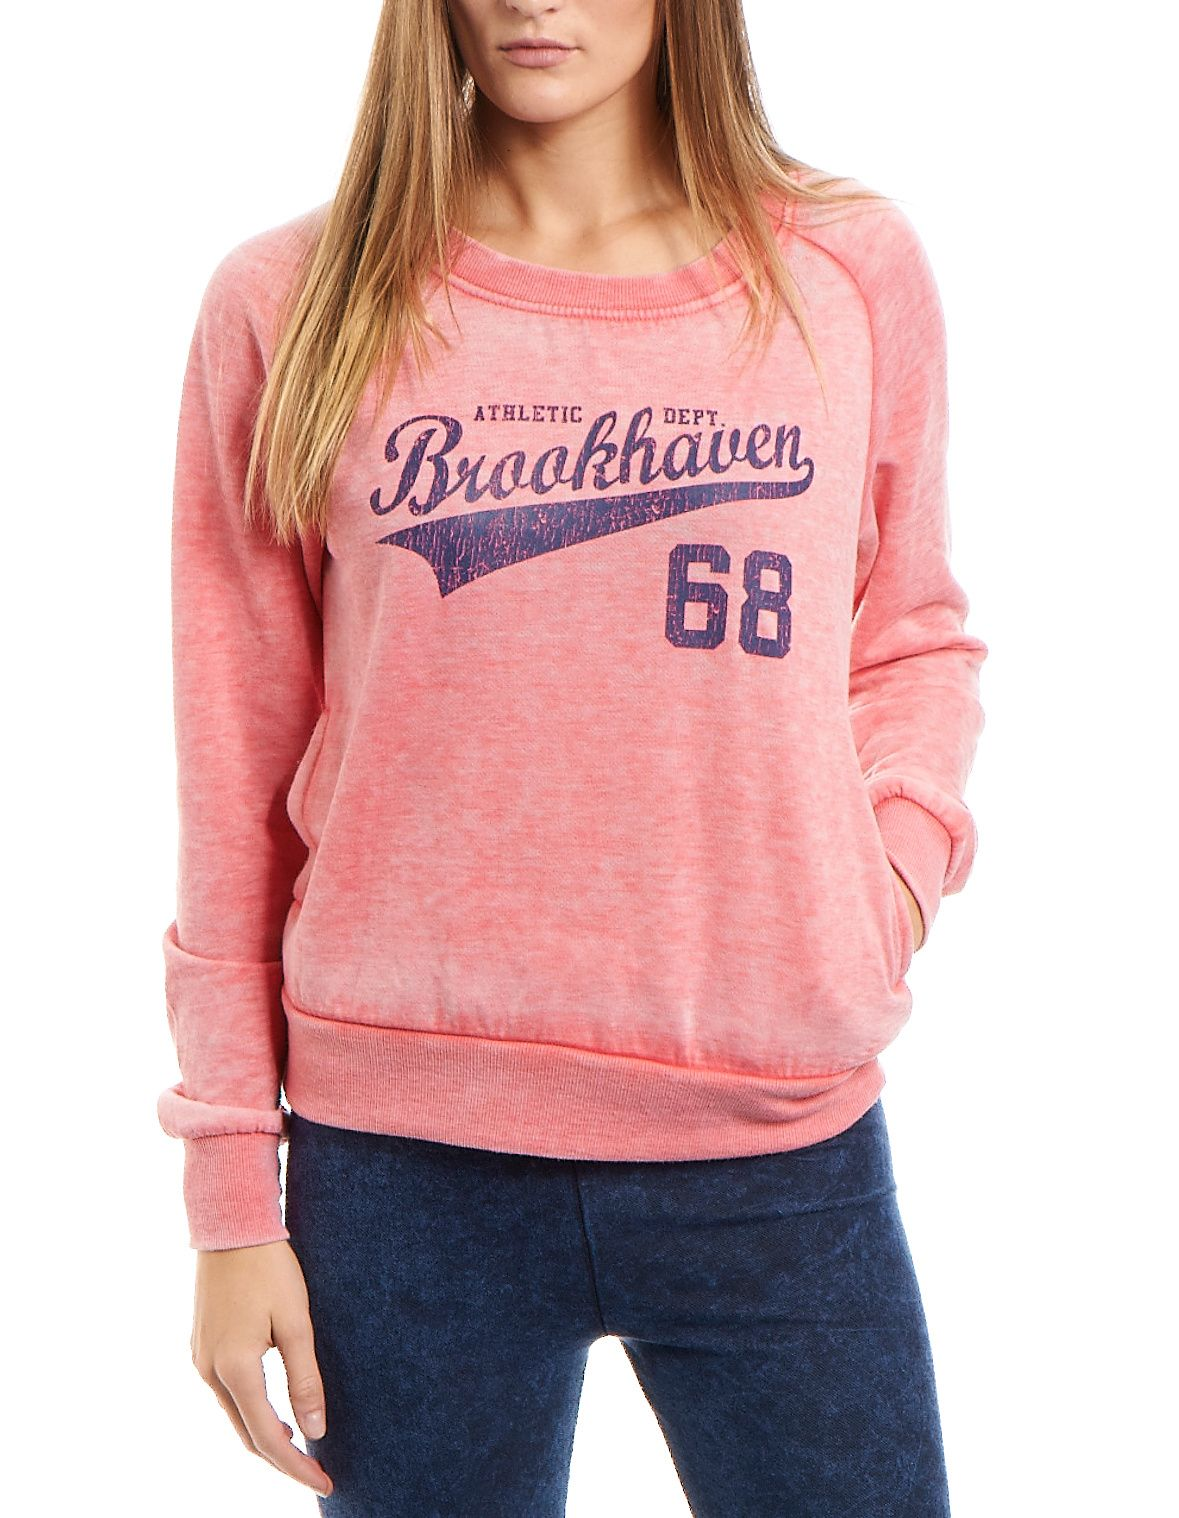 Brookhaven Emmy Crew Sweater